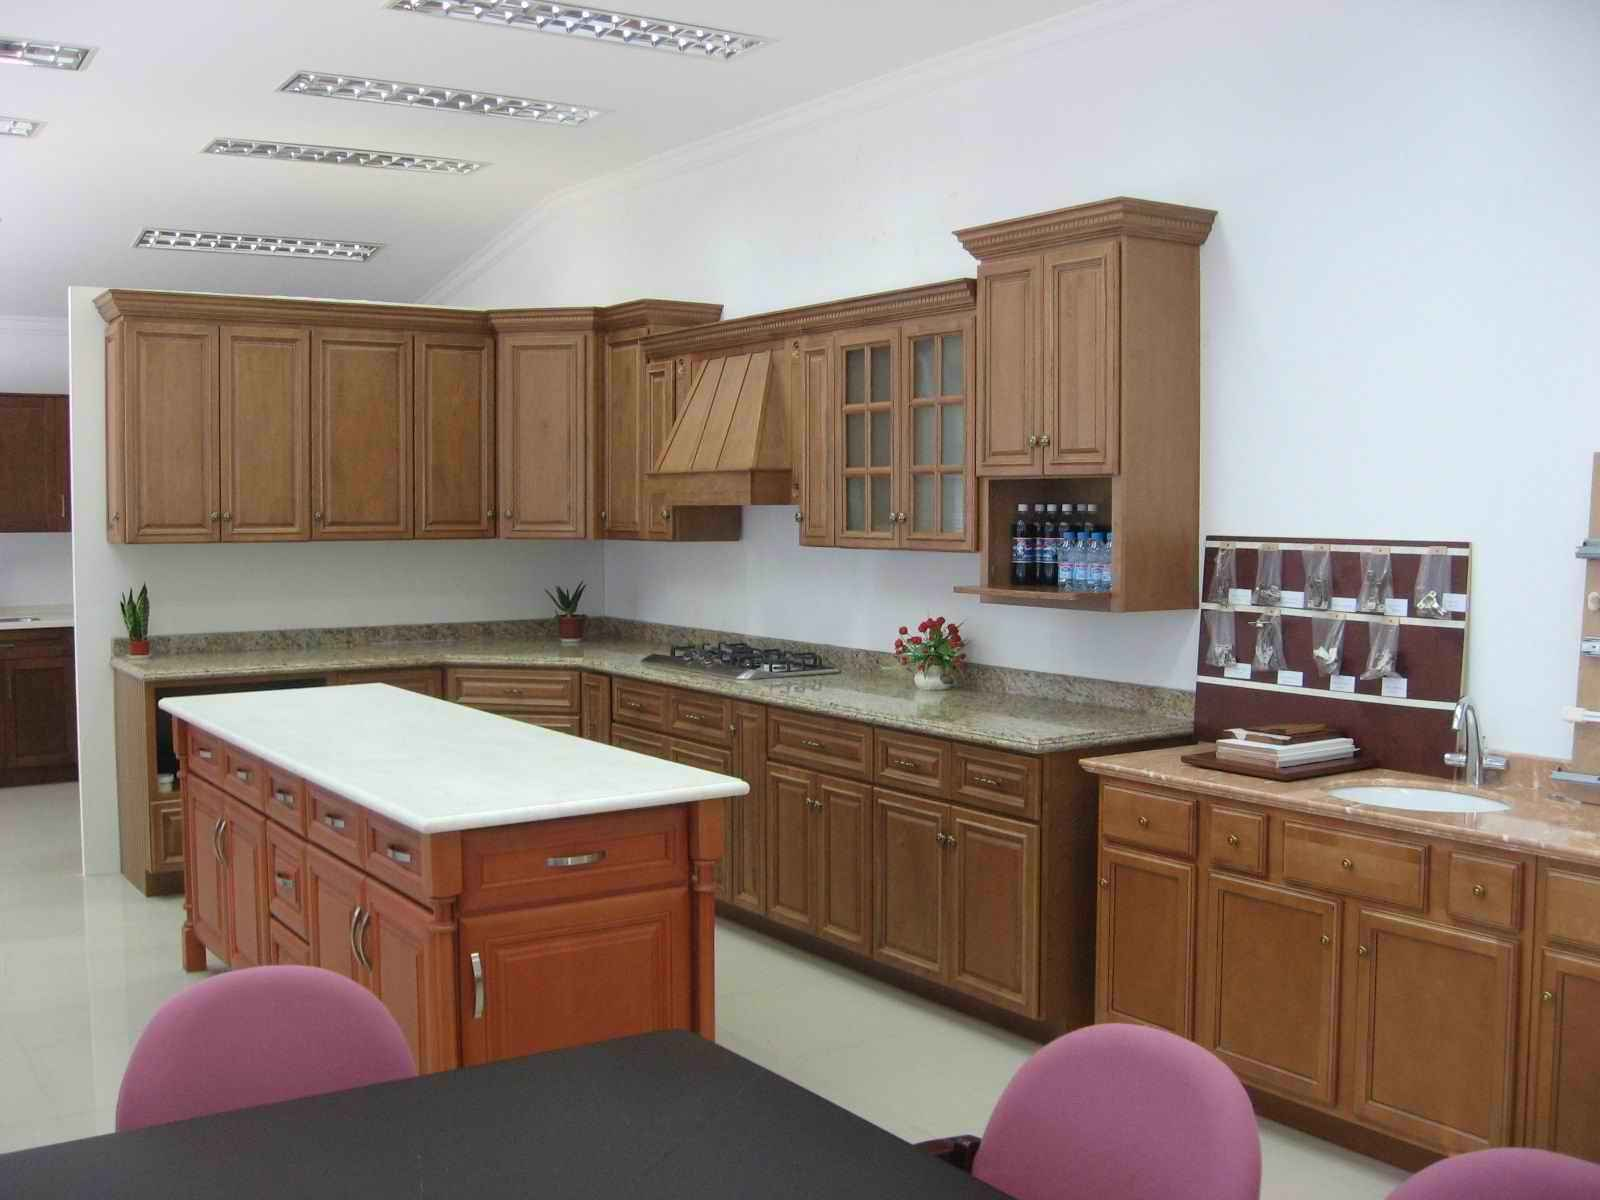 Cheap cabinets for kitchens shopping tips for Kitchen cabinets cheap